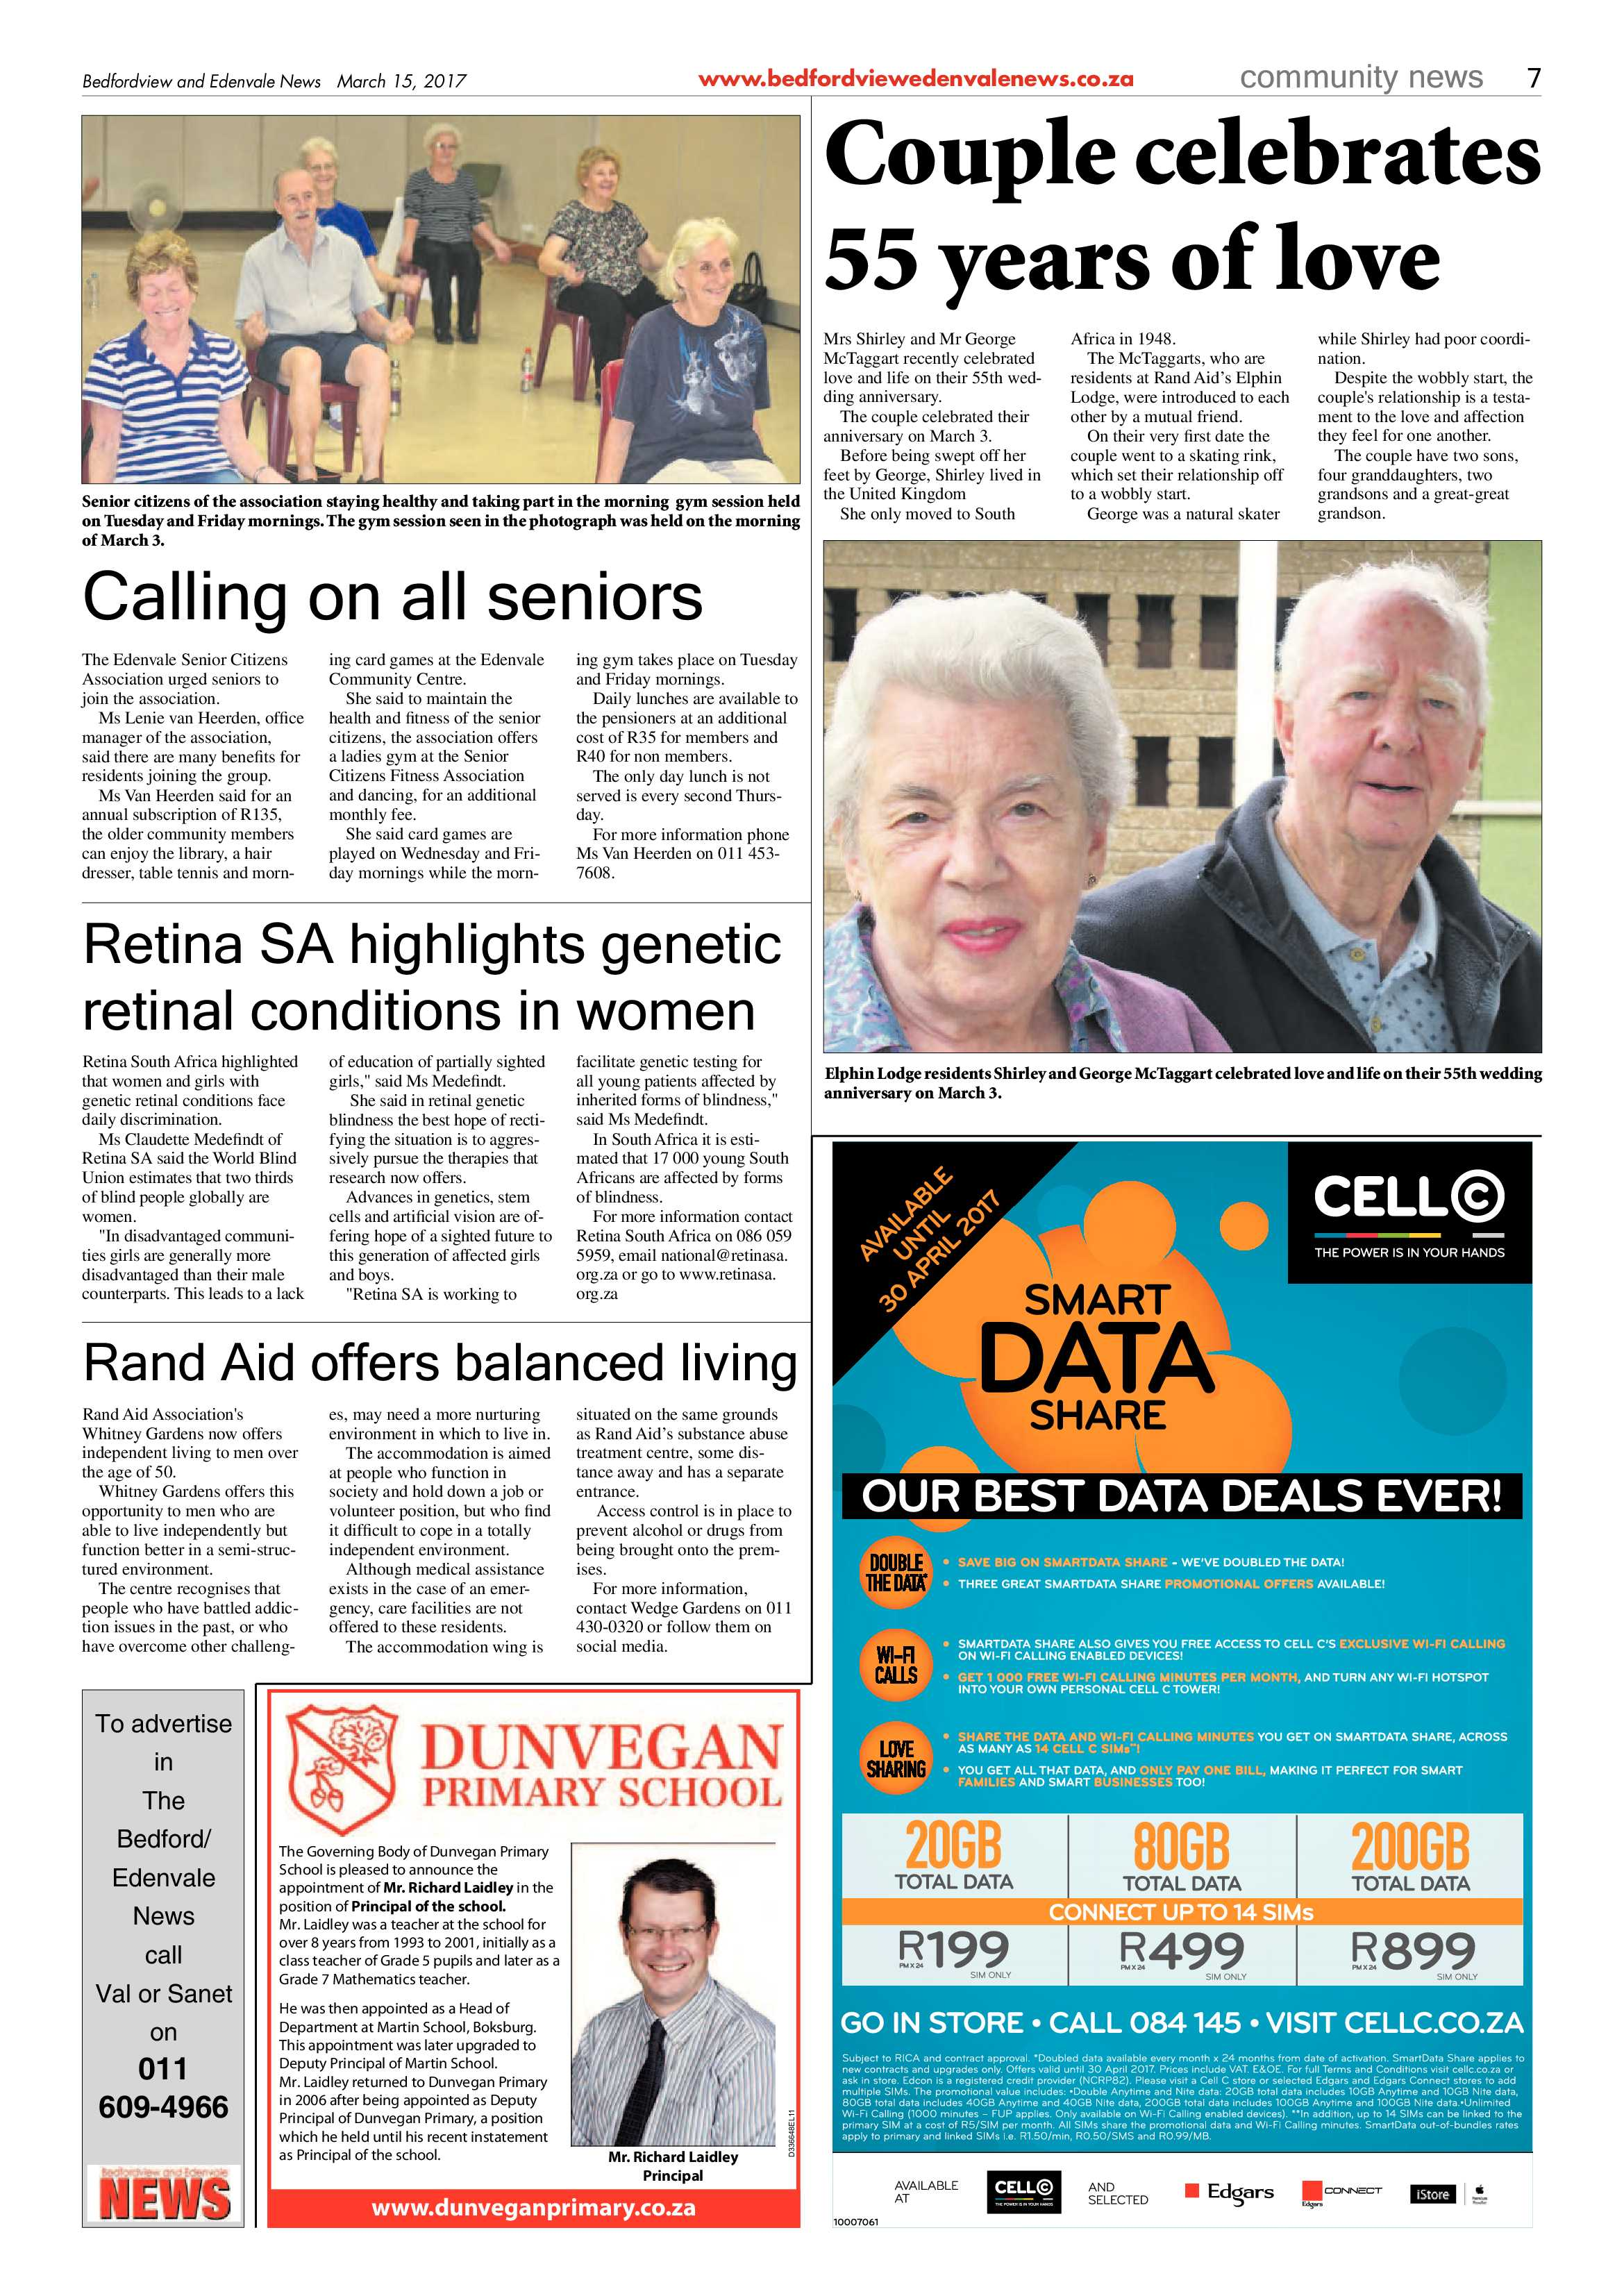 bedfordview-edenvale-news-15-march-2017-epapers-page-7